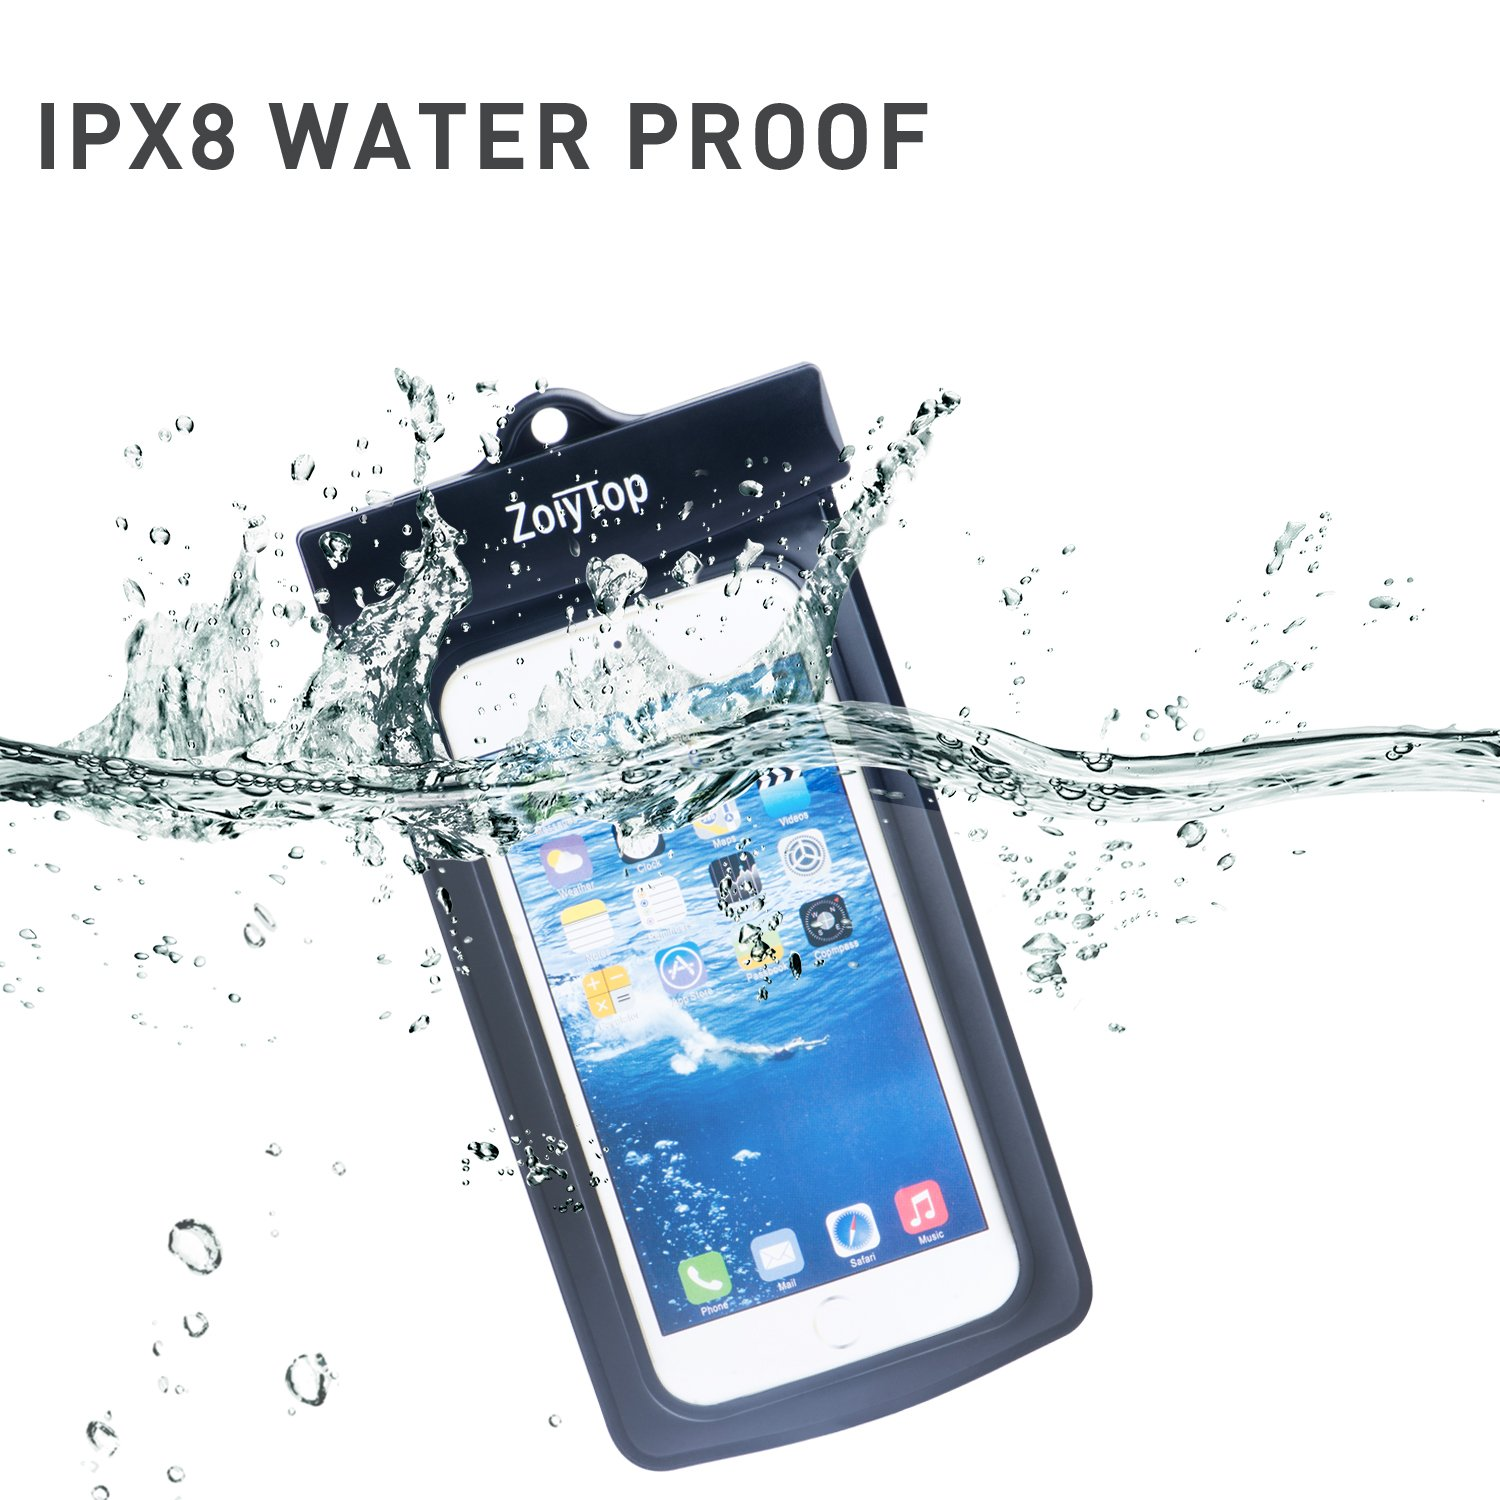 Waterproof Case,Universal best Durable Underwater Dry Bag Sealed System for iPhone 7/6s/6s plus/5s/SE, Samsung Galaxy S6/S7,HTC and Other Smartphone;Waterproof Bag for Boating/Swimming/Diving (black)